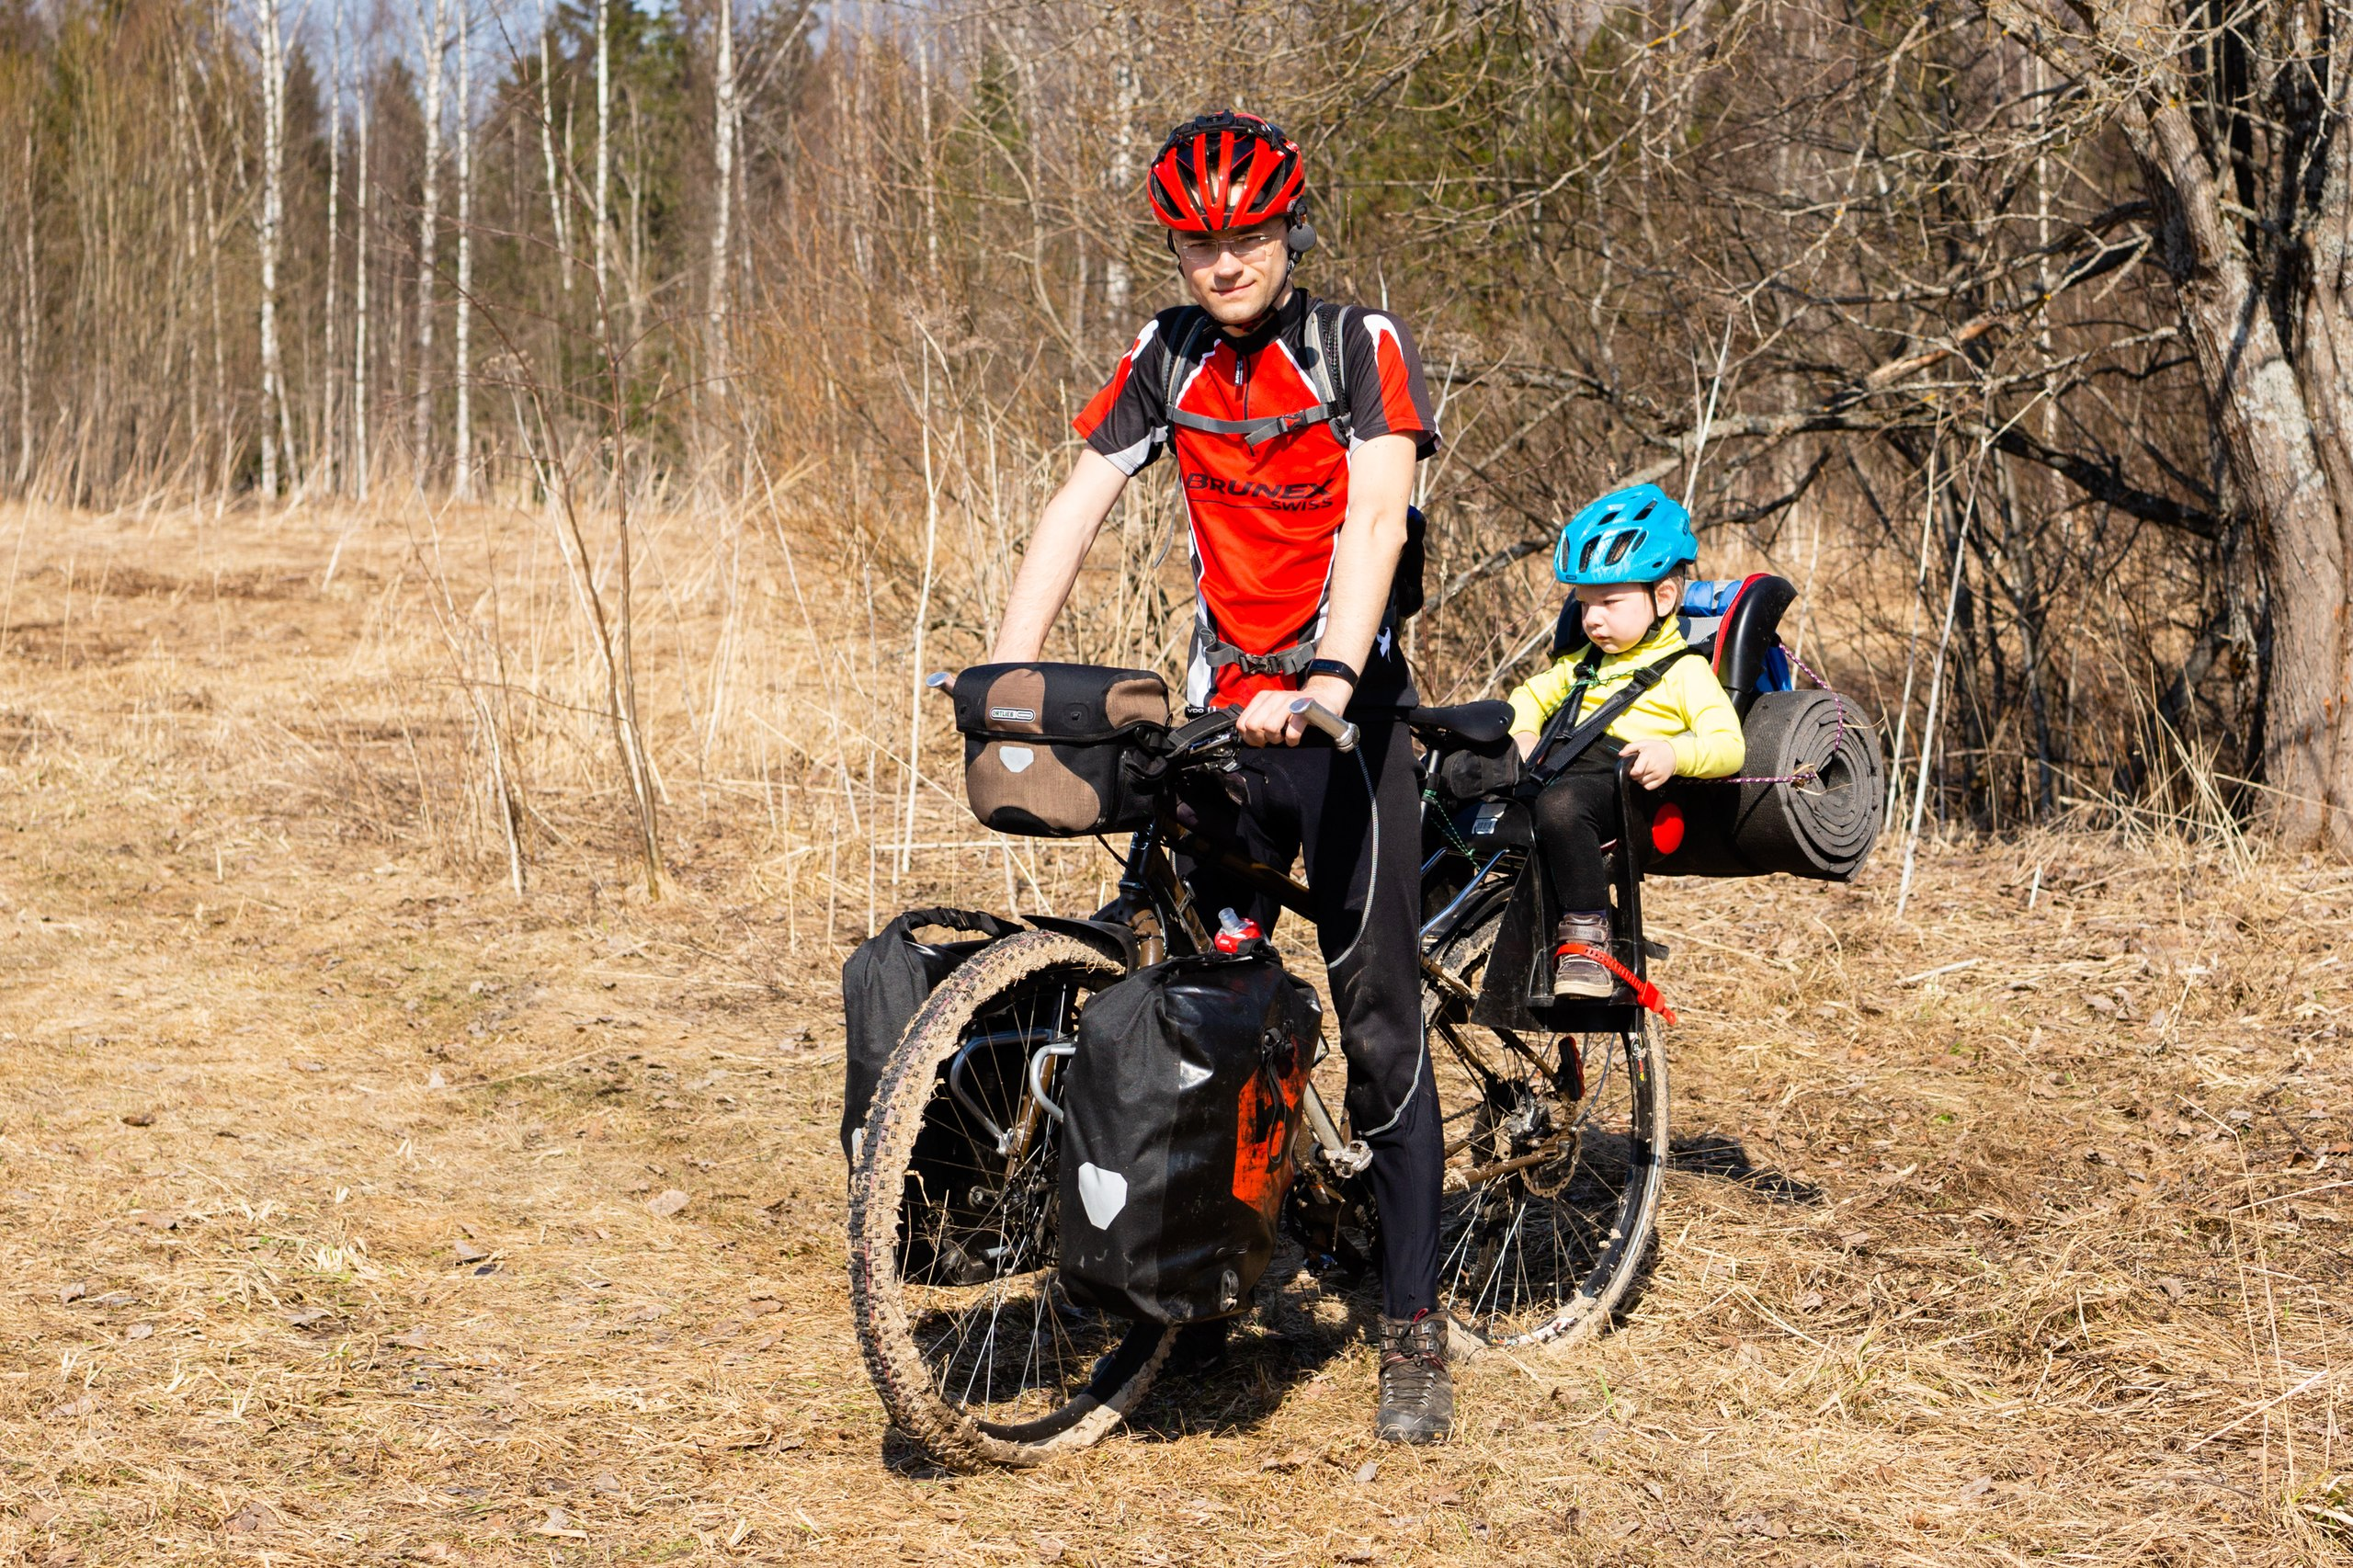 Map Legend - Openmtbmap org - Mountainbike and Hiking Maps